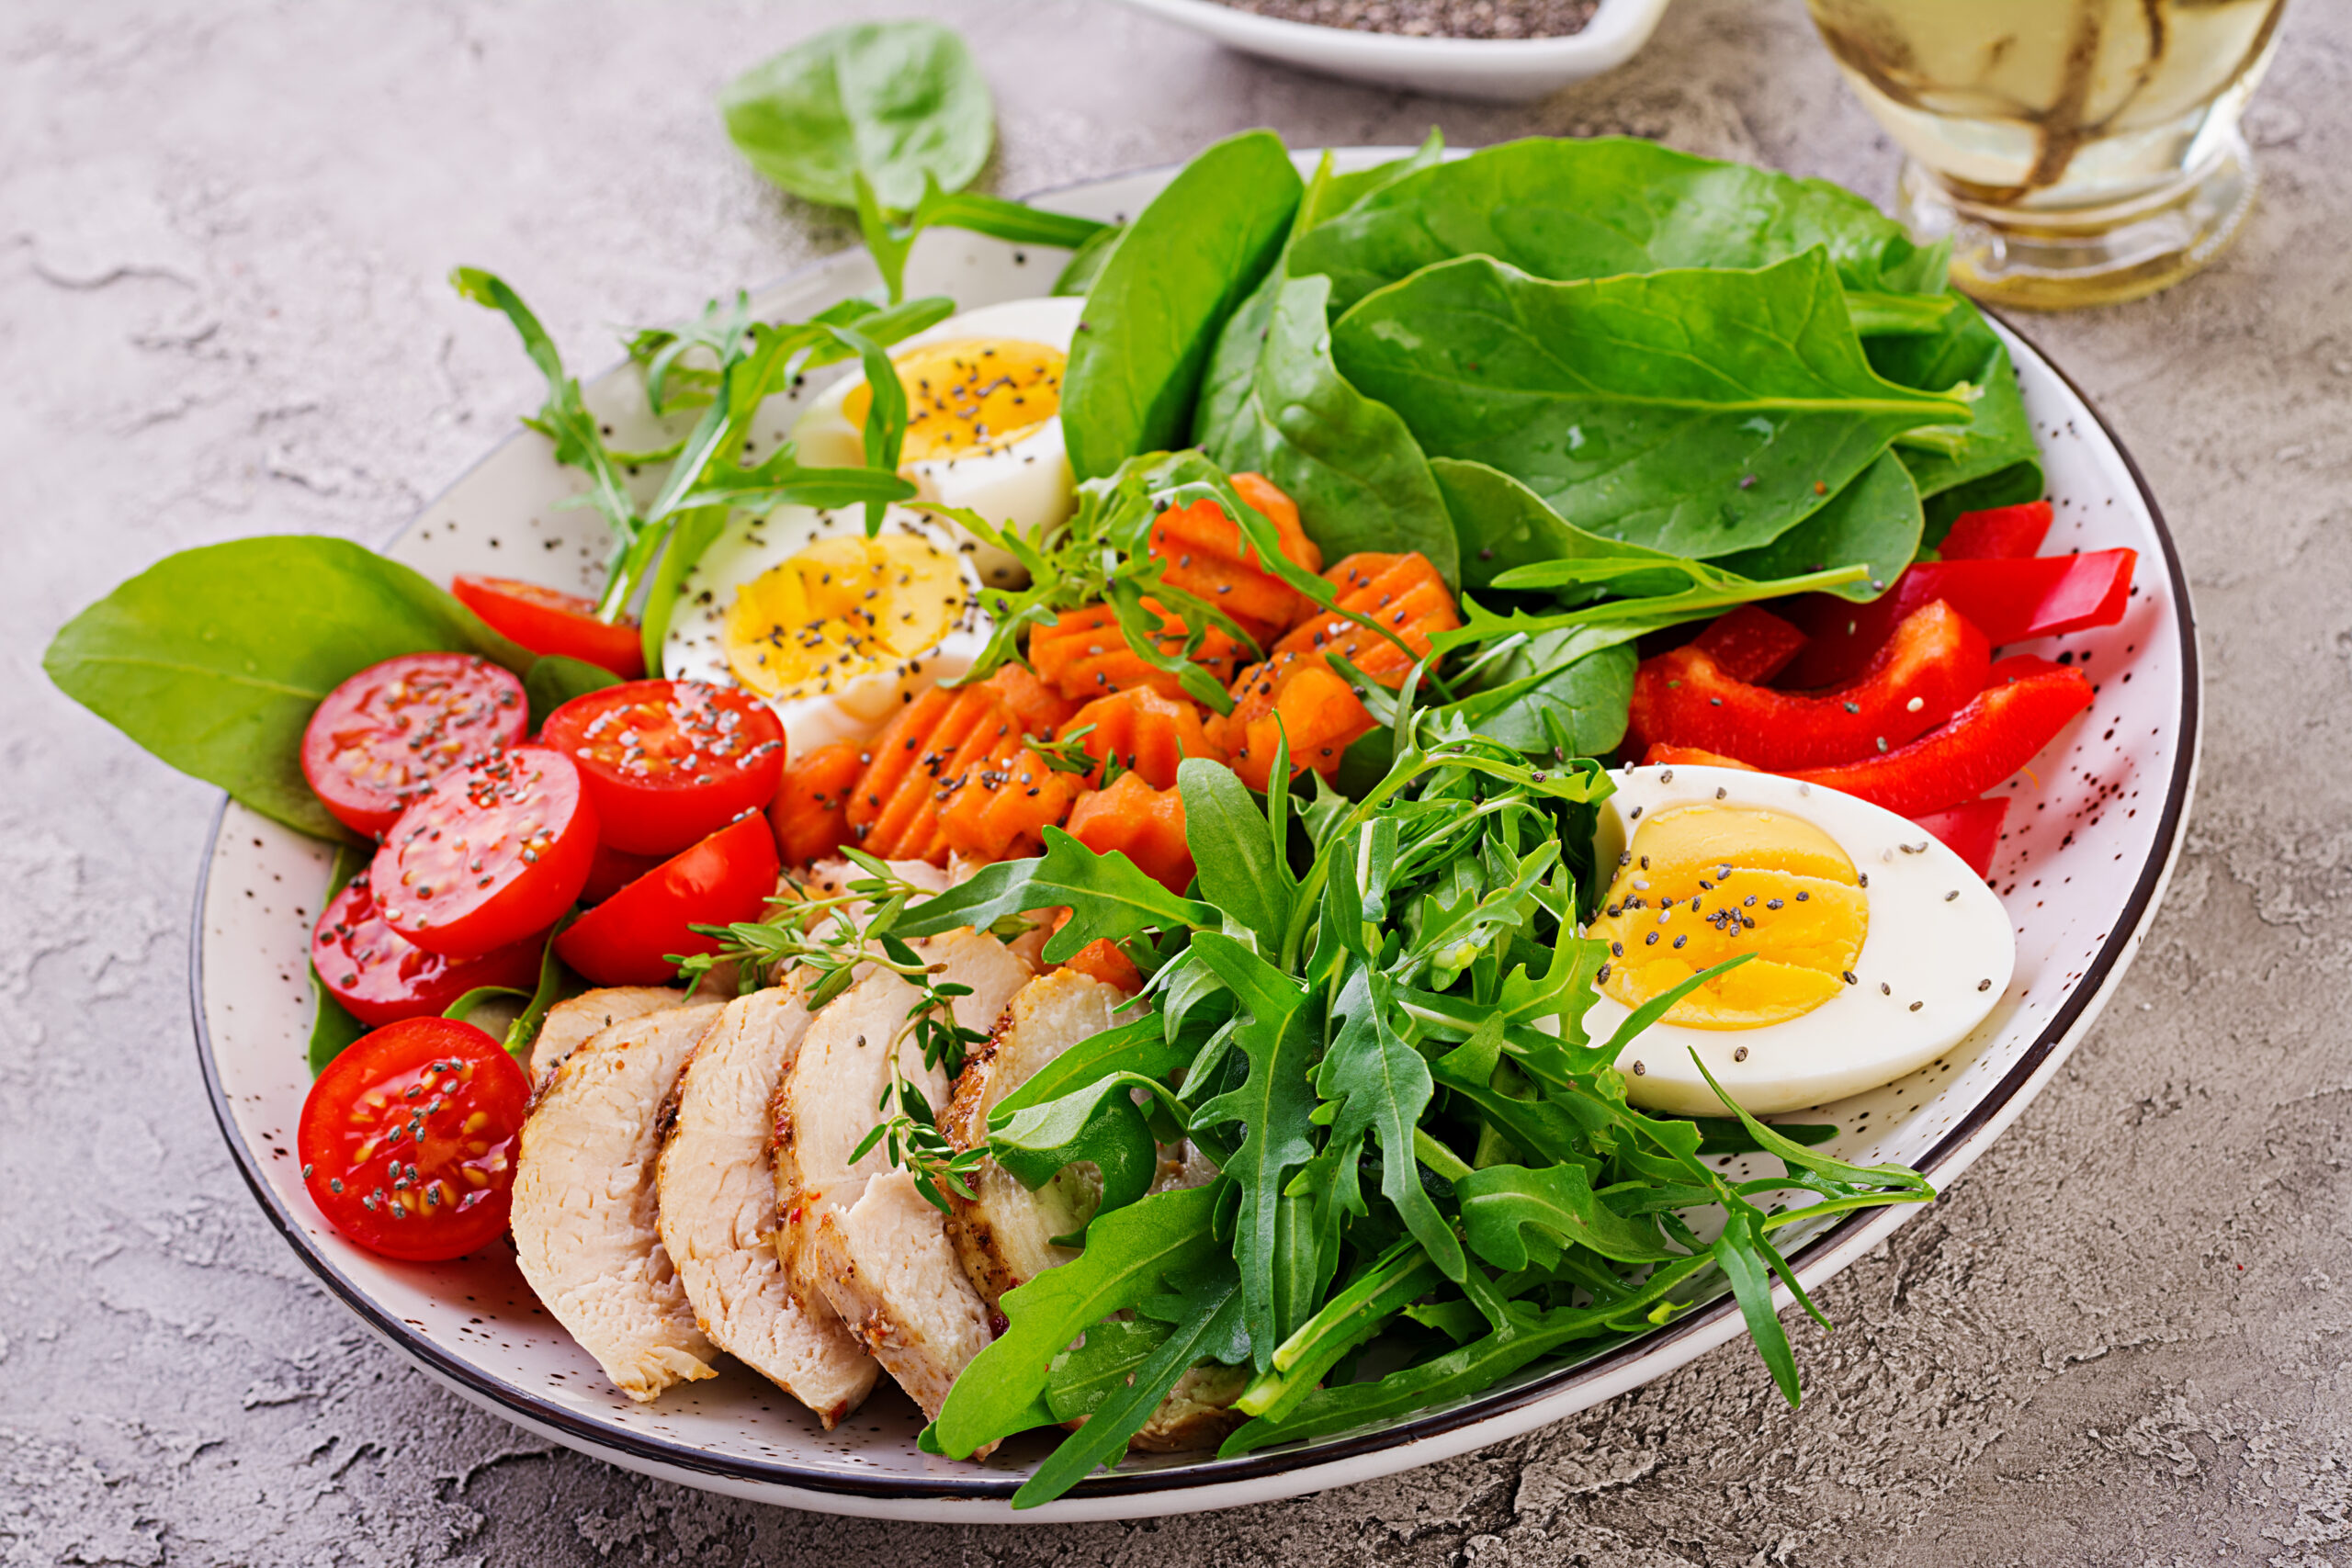 Plate with a keto diet food. Cherry tomatoes, chicken breast, eggs, carrot, salad with arugula  and spinach. Keto lunch